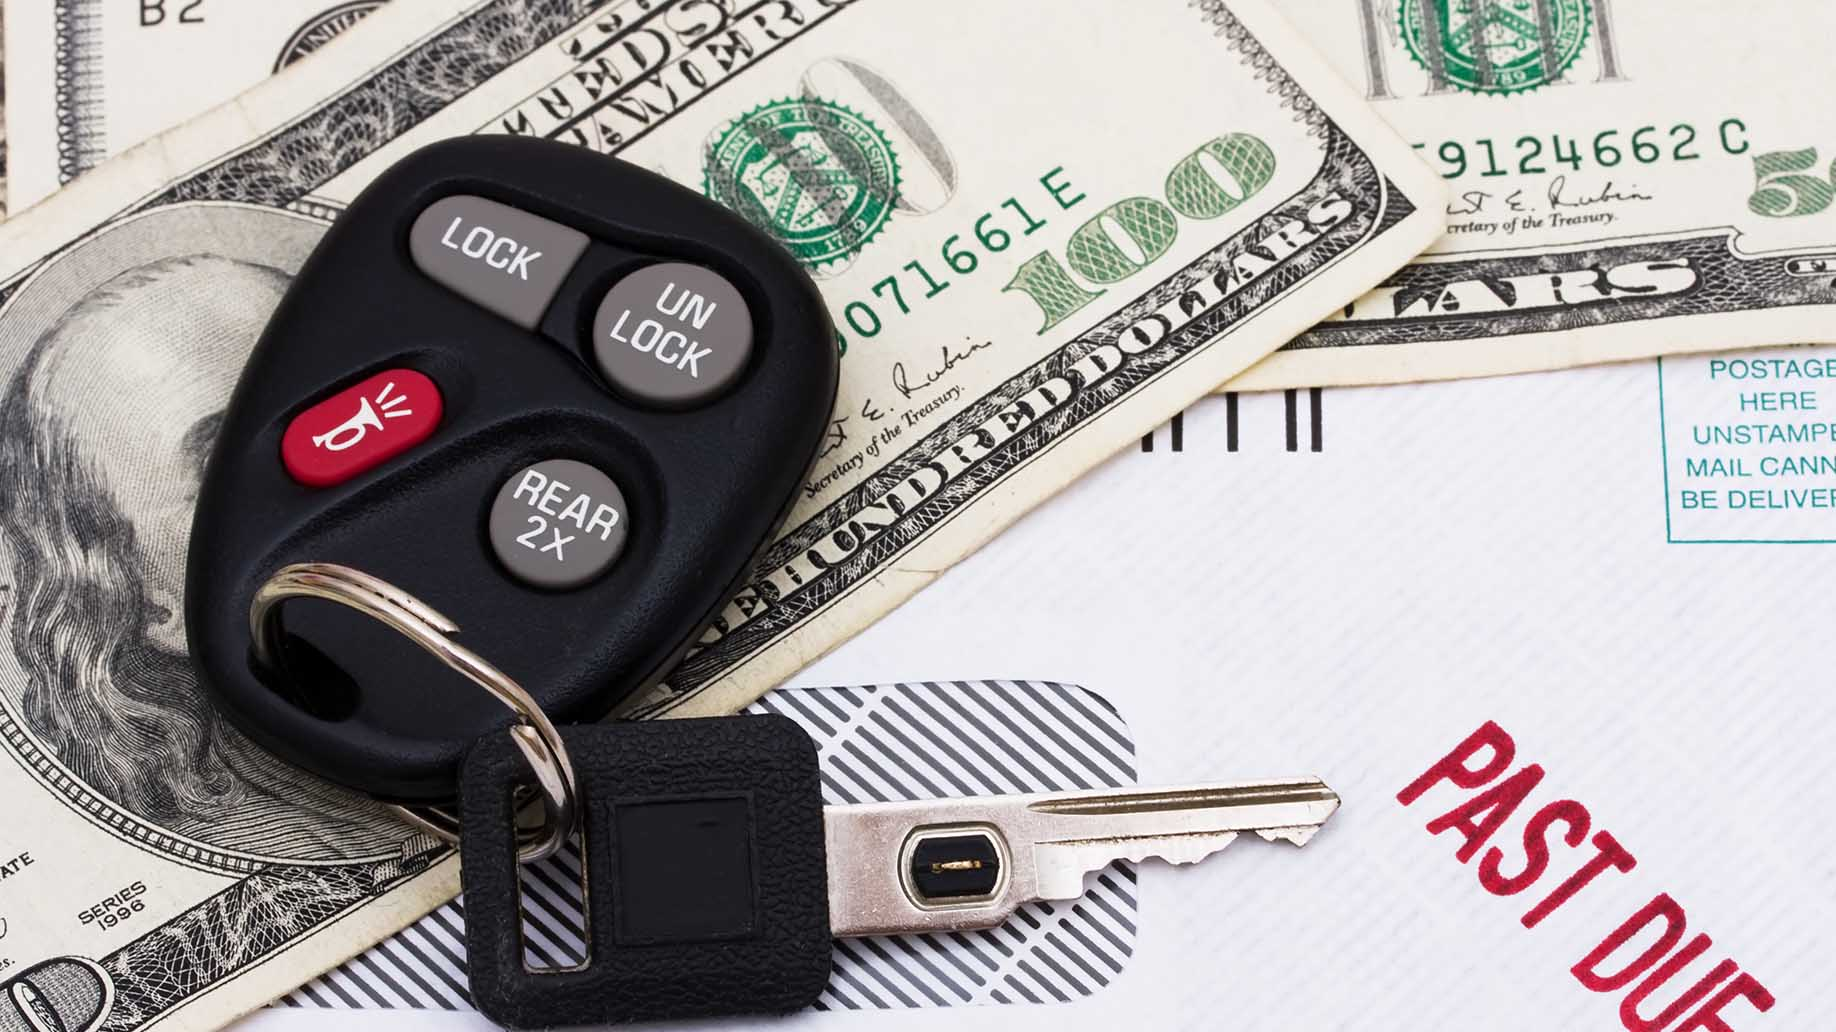 Pros Cons Of Leasing A Car Vs Buying A Car Good Or Bad Idea